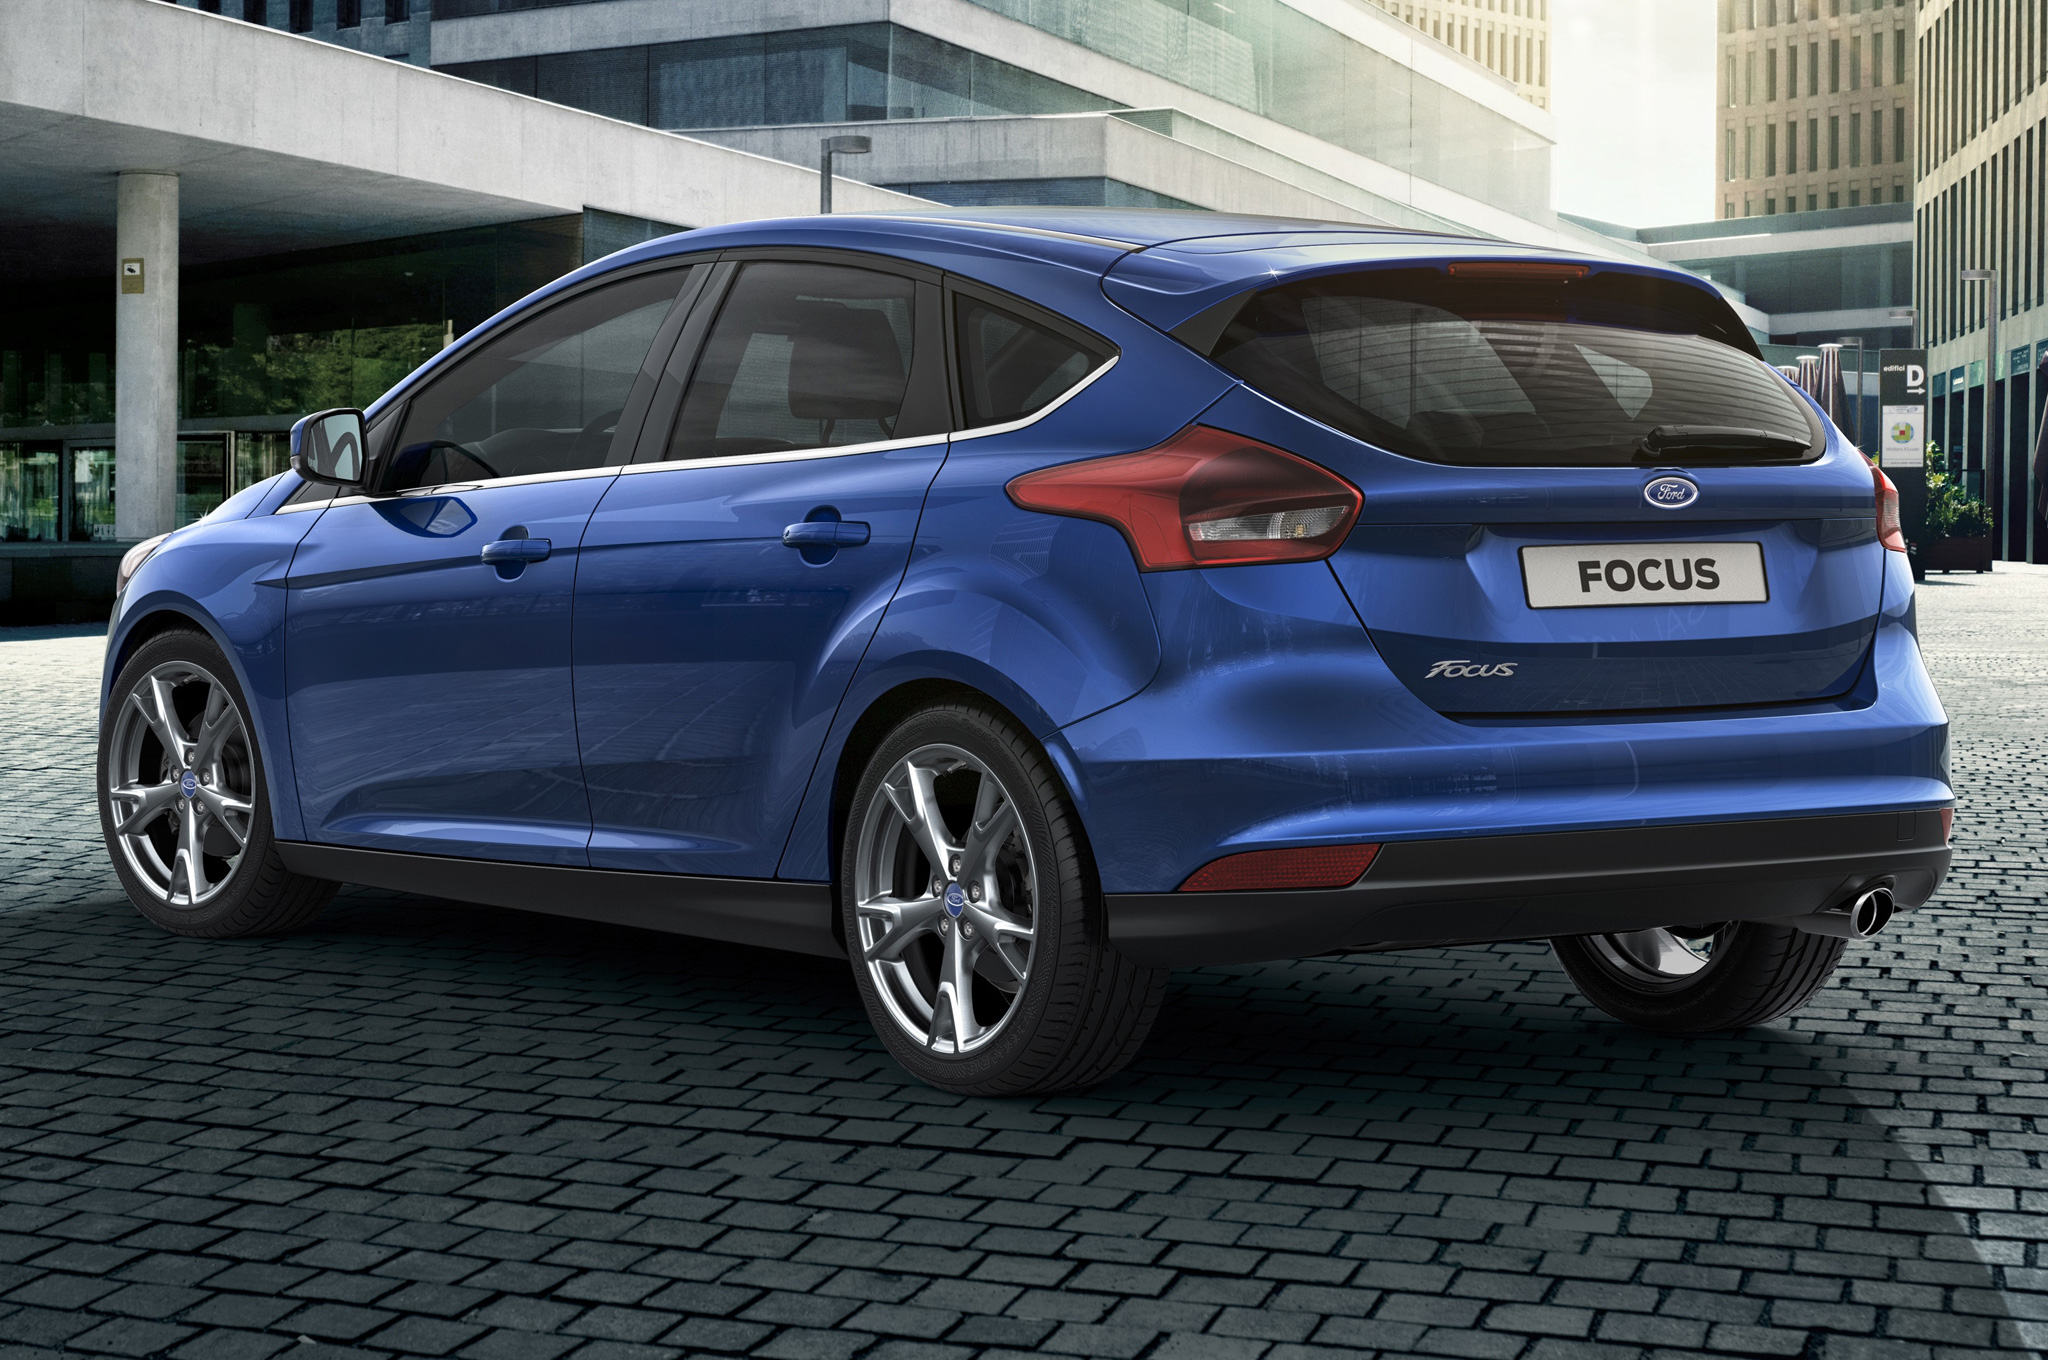 2017 Ford Focus Photo 5